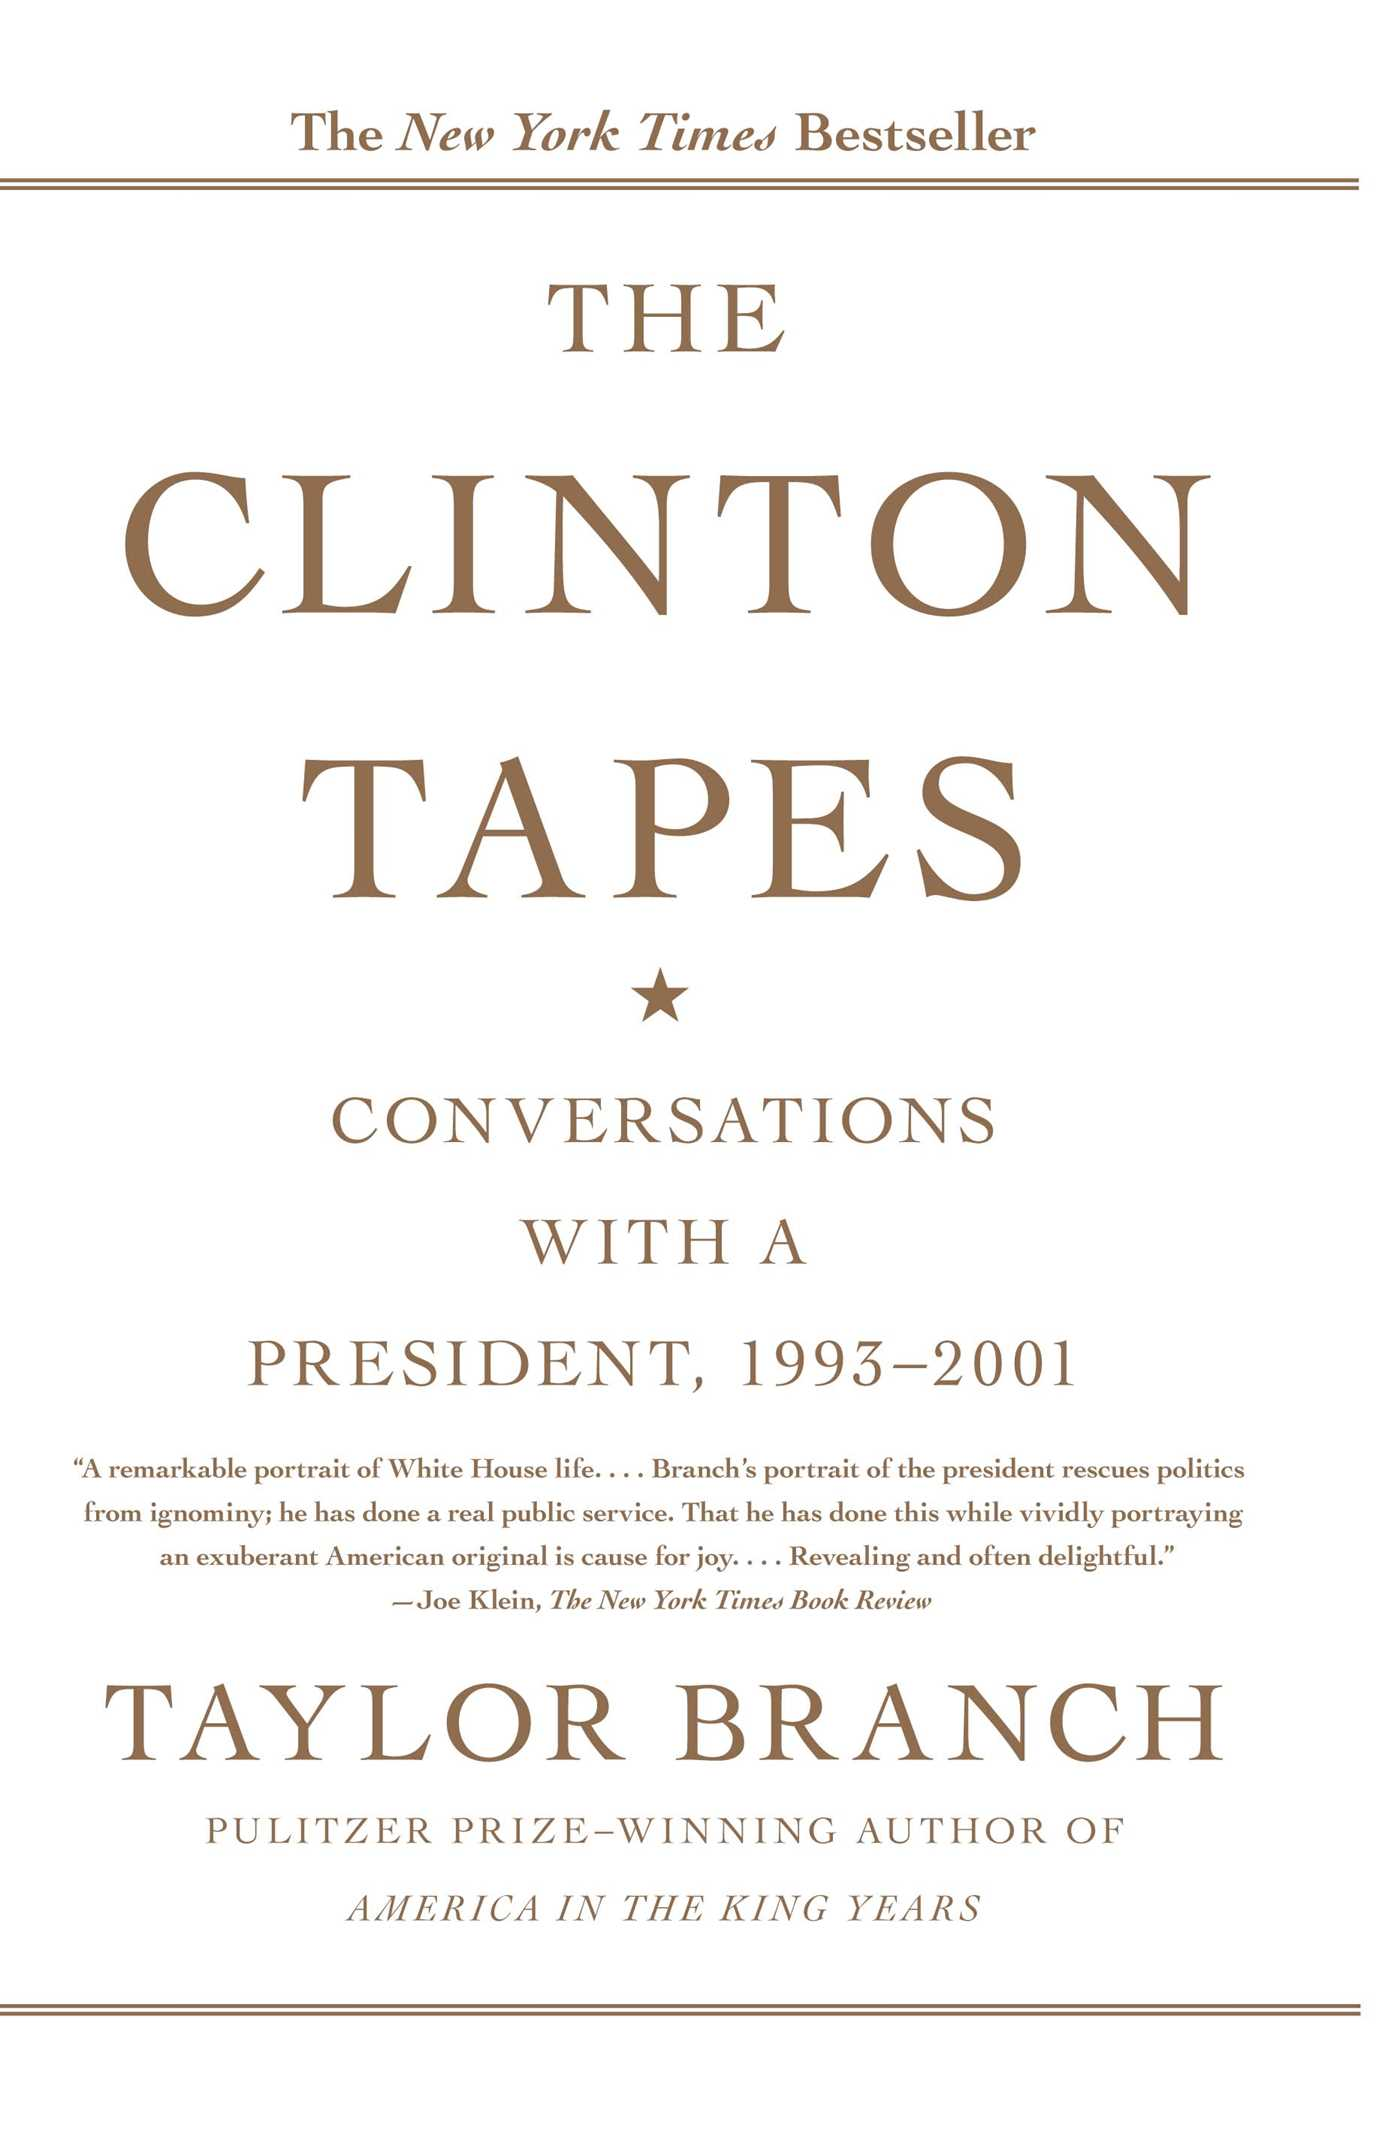 Clinton tapes 9781416543343 hr